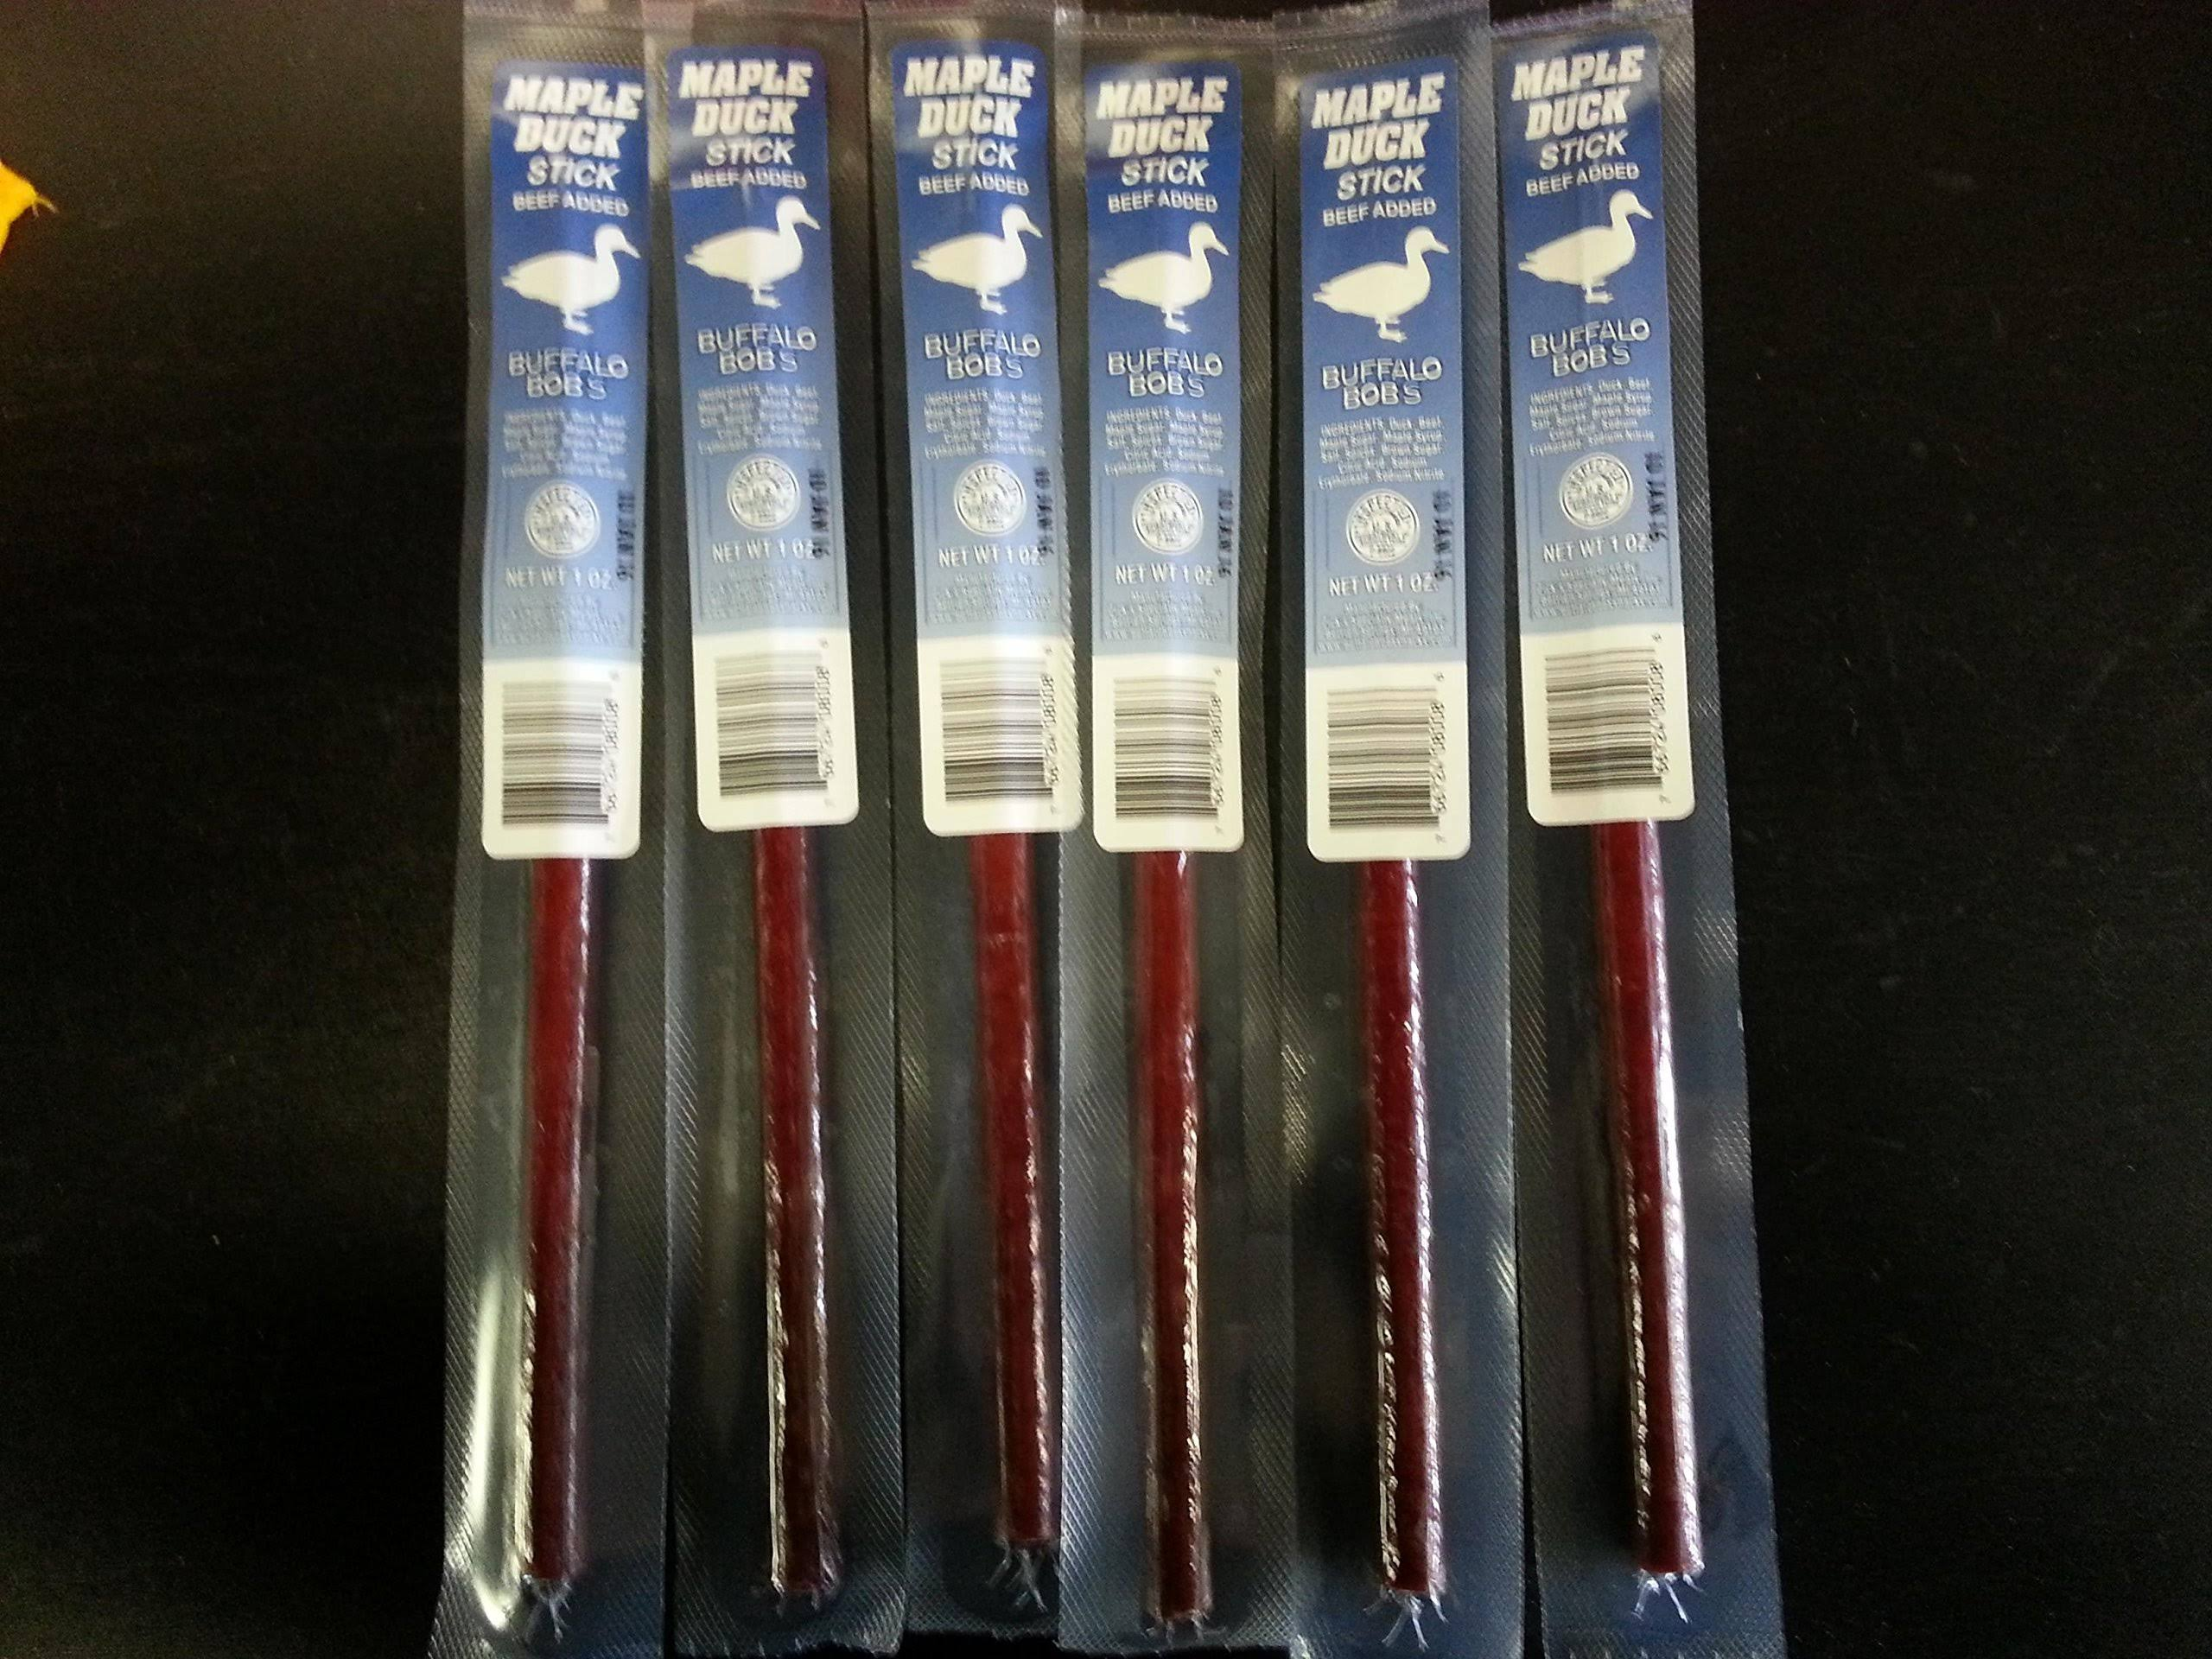 Buffalo Bobs Maple Duck Stick - 6pk